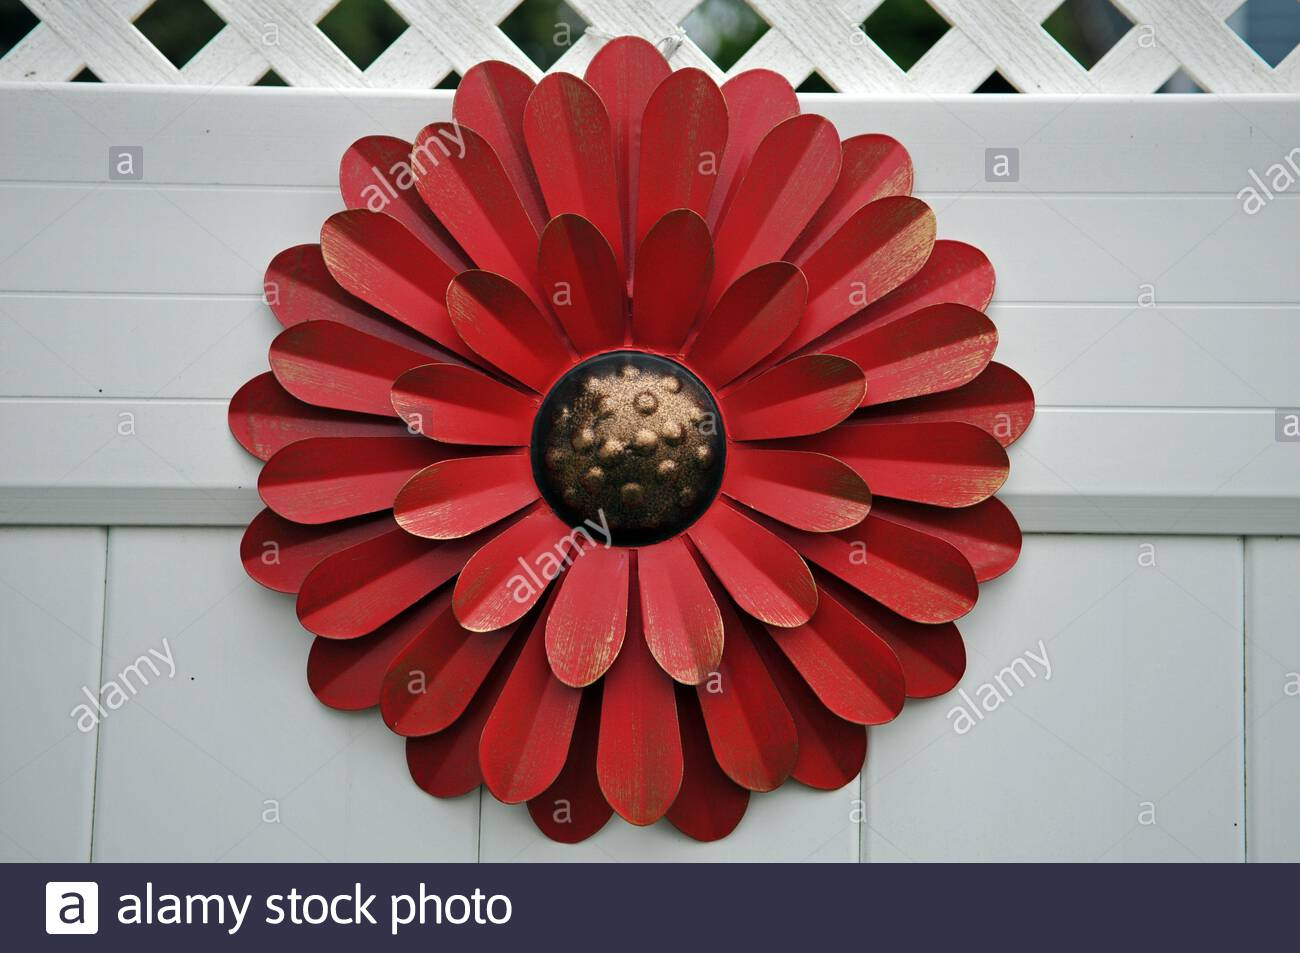 Juegoal Red 16 Inch Metal Flower Wall Art Decor For Outdoor Garden Stock Photo Alamy